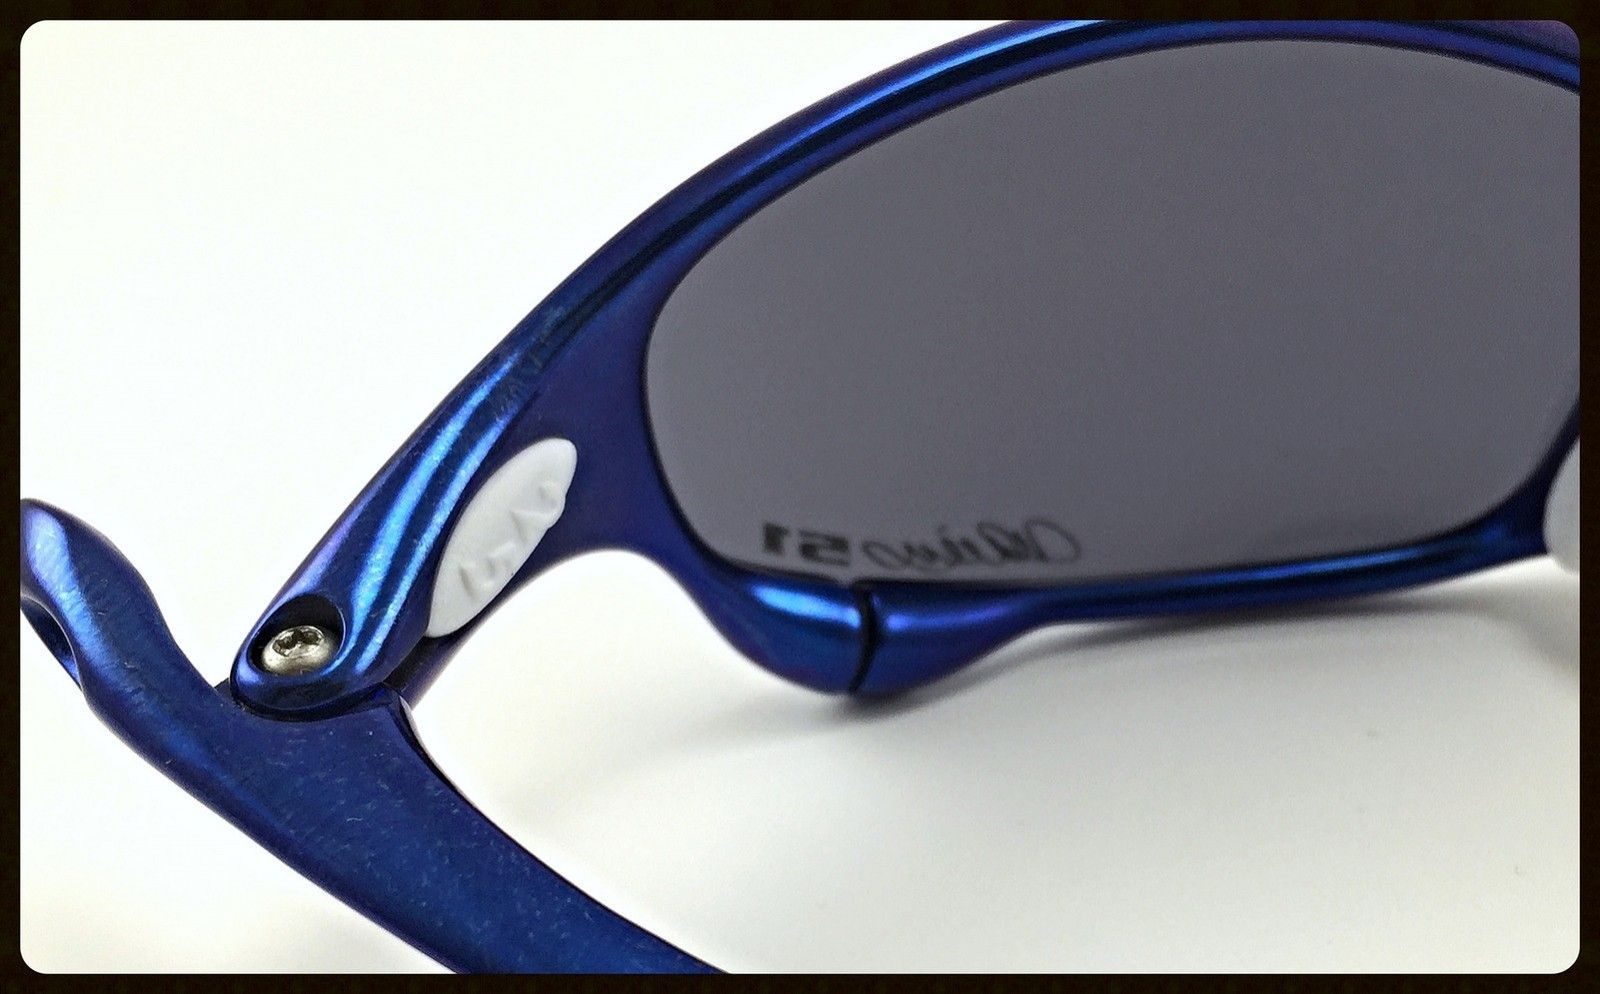 Blue Anodized Polished Juliet - Ichiro Style - 51 Anodized Blue Juliet with OO Blue Ichiro Lenses and White OEM Rubbers-4.jpg